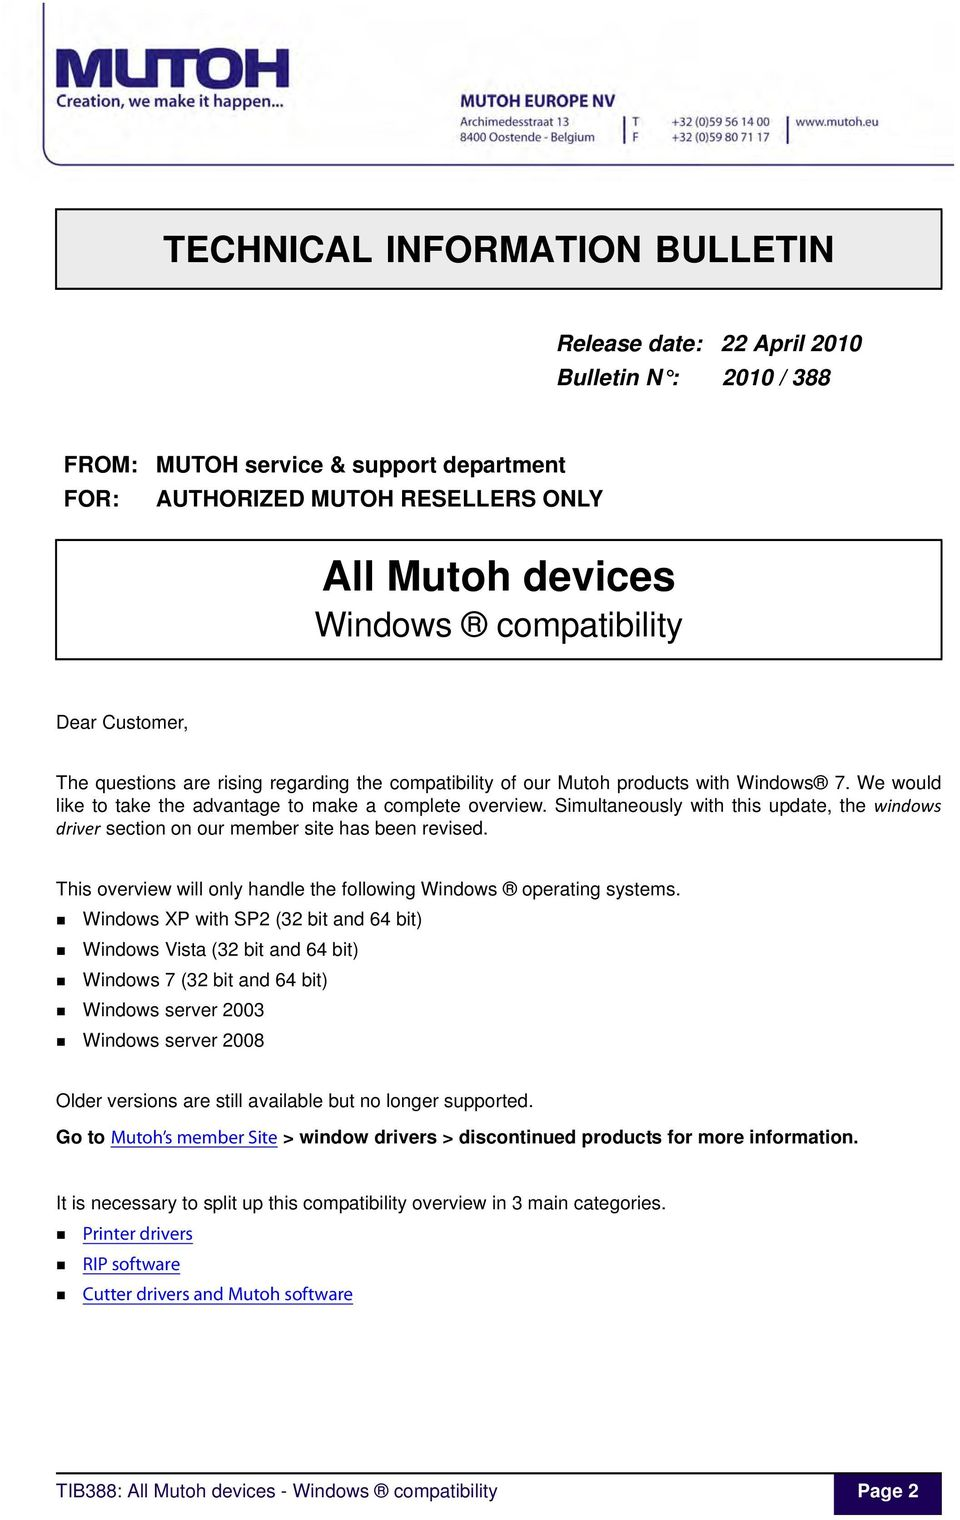 1  TIB388 about the Windows compatibility of all Mutoh devices